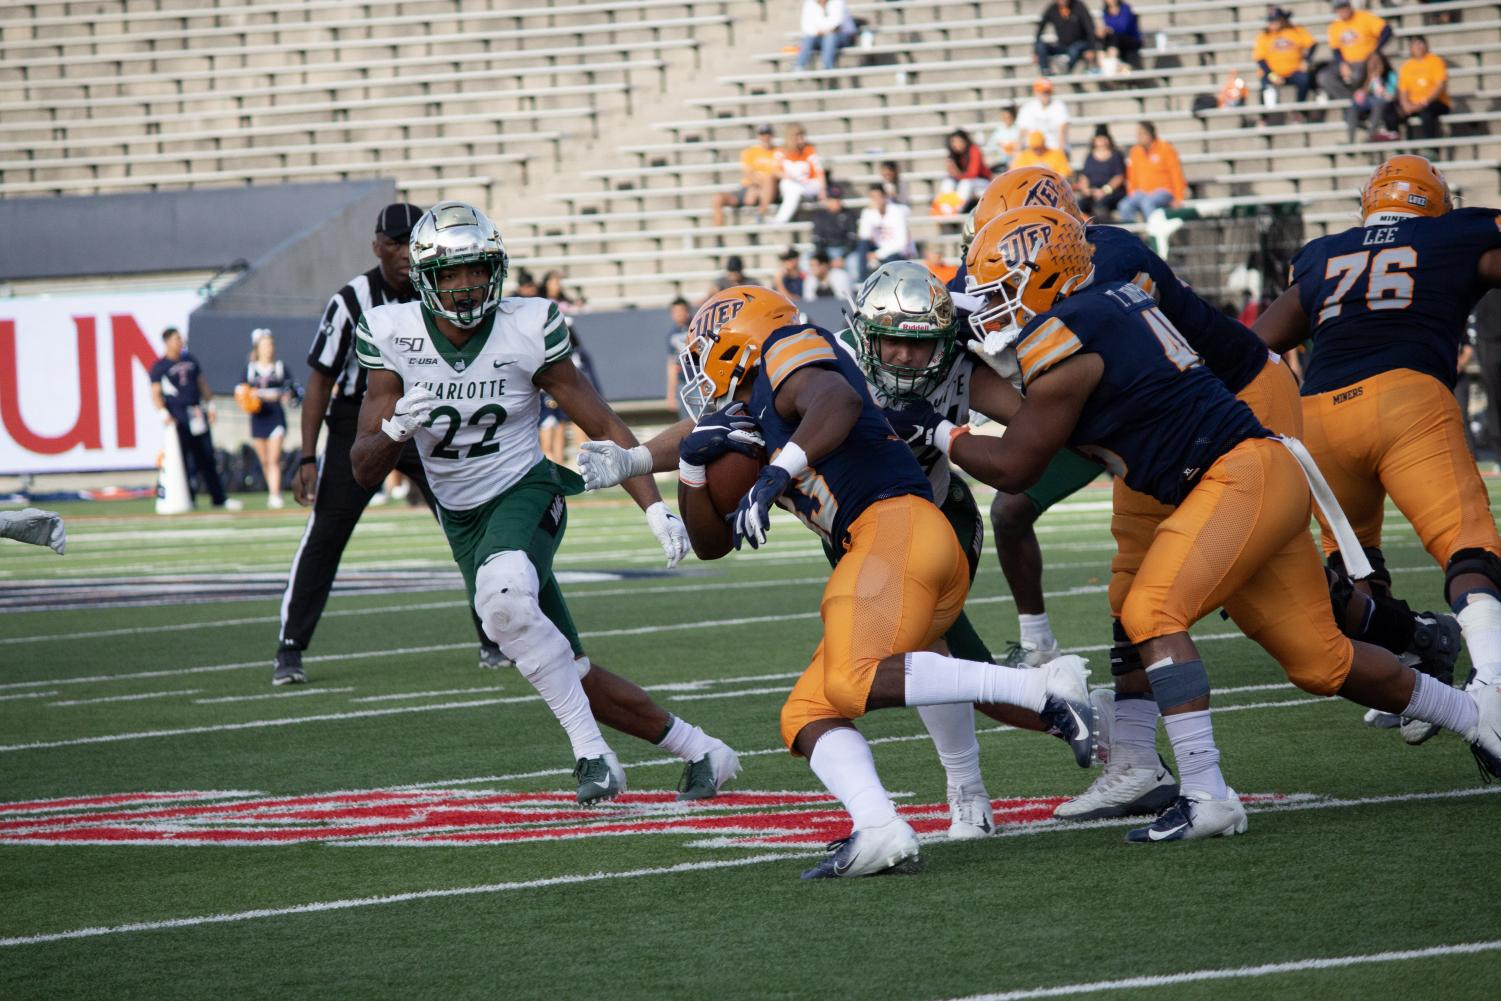 Leading 21-7 at the half over the Charlotte 49ers, the UTEP Miners were shutout in the second half allowing 21 unanswered points to its conference rival in a 28-21 loss. This loss was the eighth consecutive loss for the Miners.